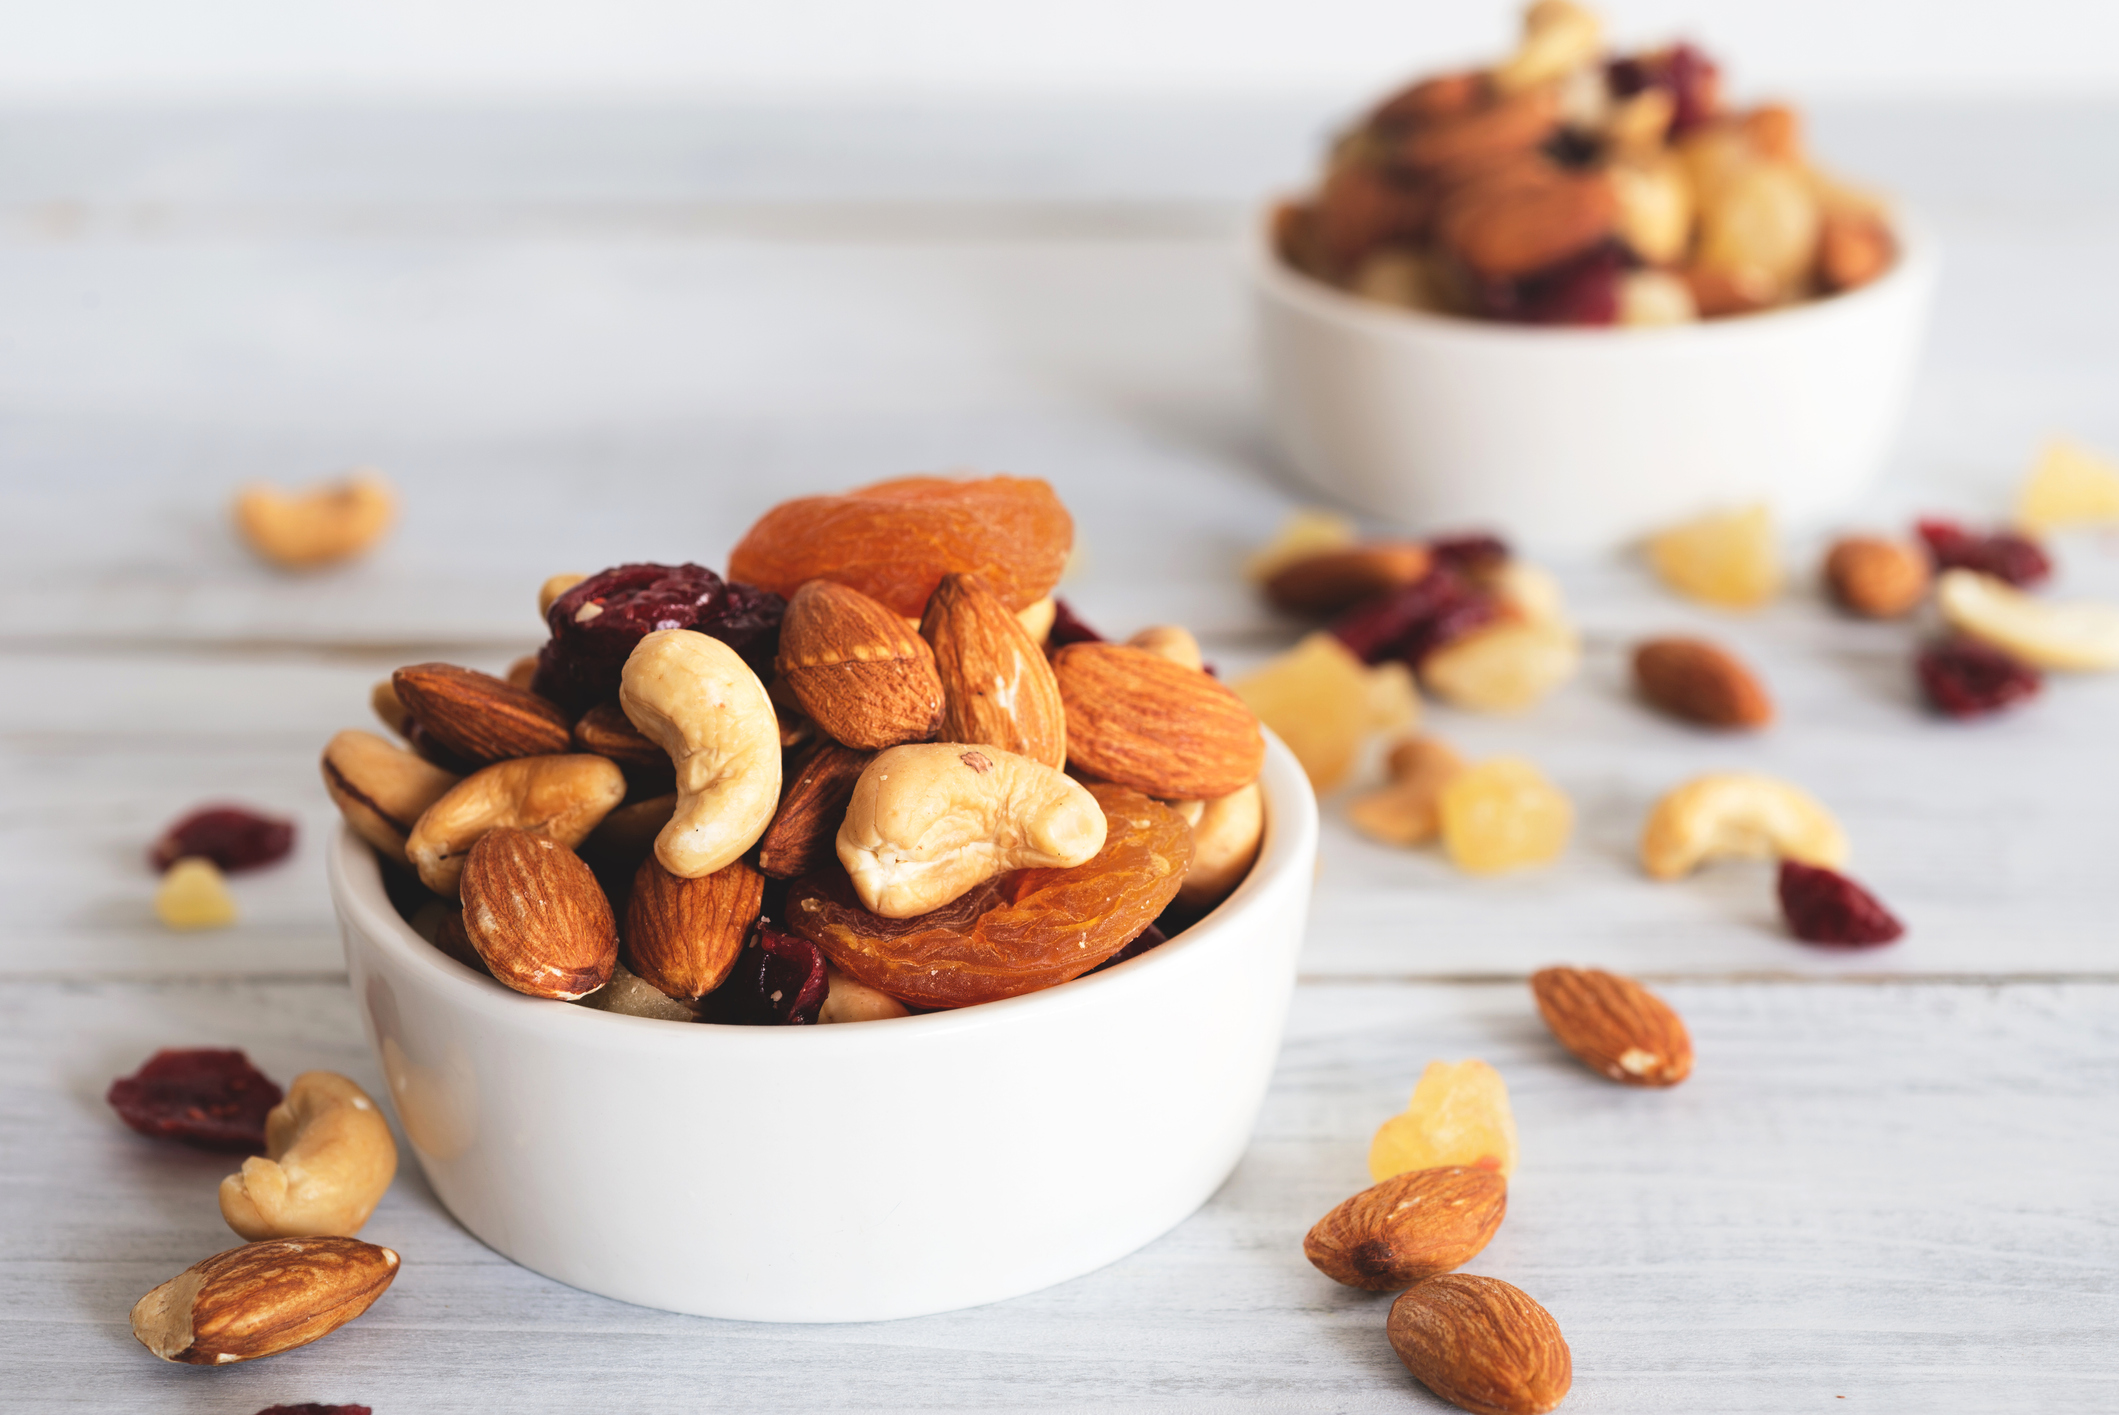 Small bowls of nuts and dried fruits